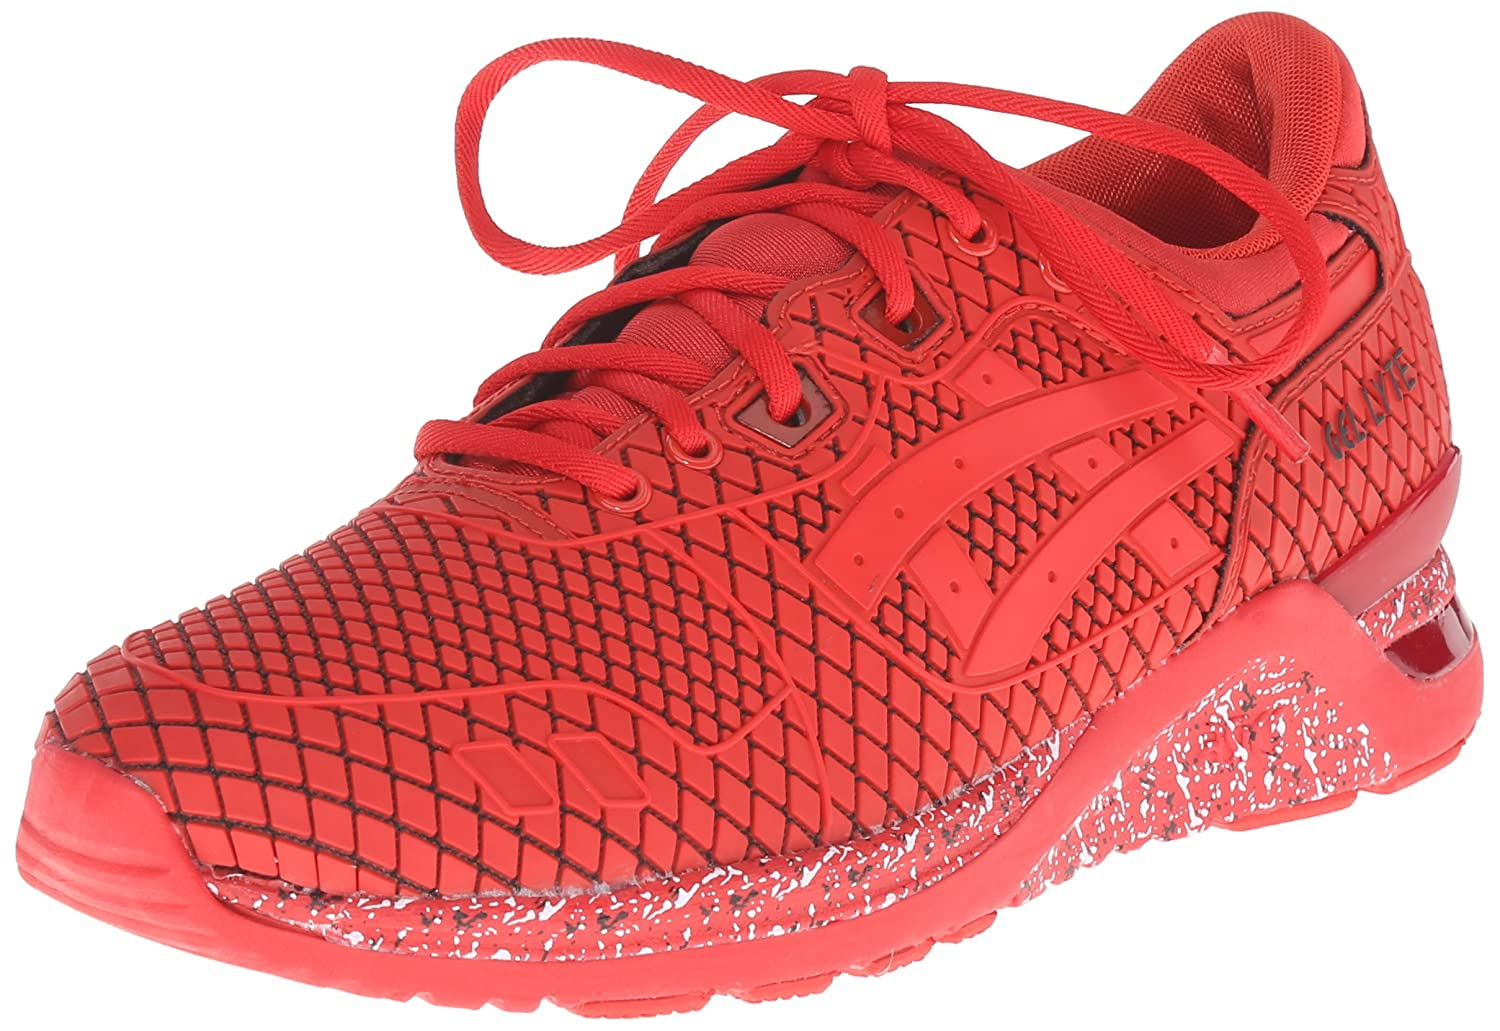 ASICS Men's Gel-Lyte Evo NT Retro Running Shoe B00UDDJ3AC 10 D(M) US|Red/Red